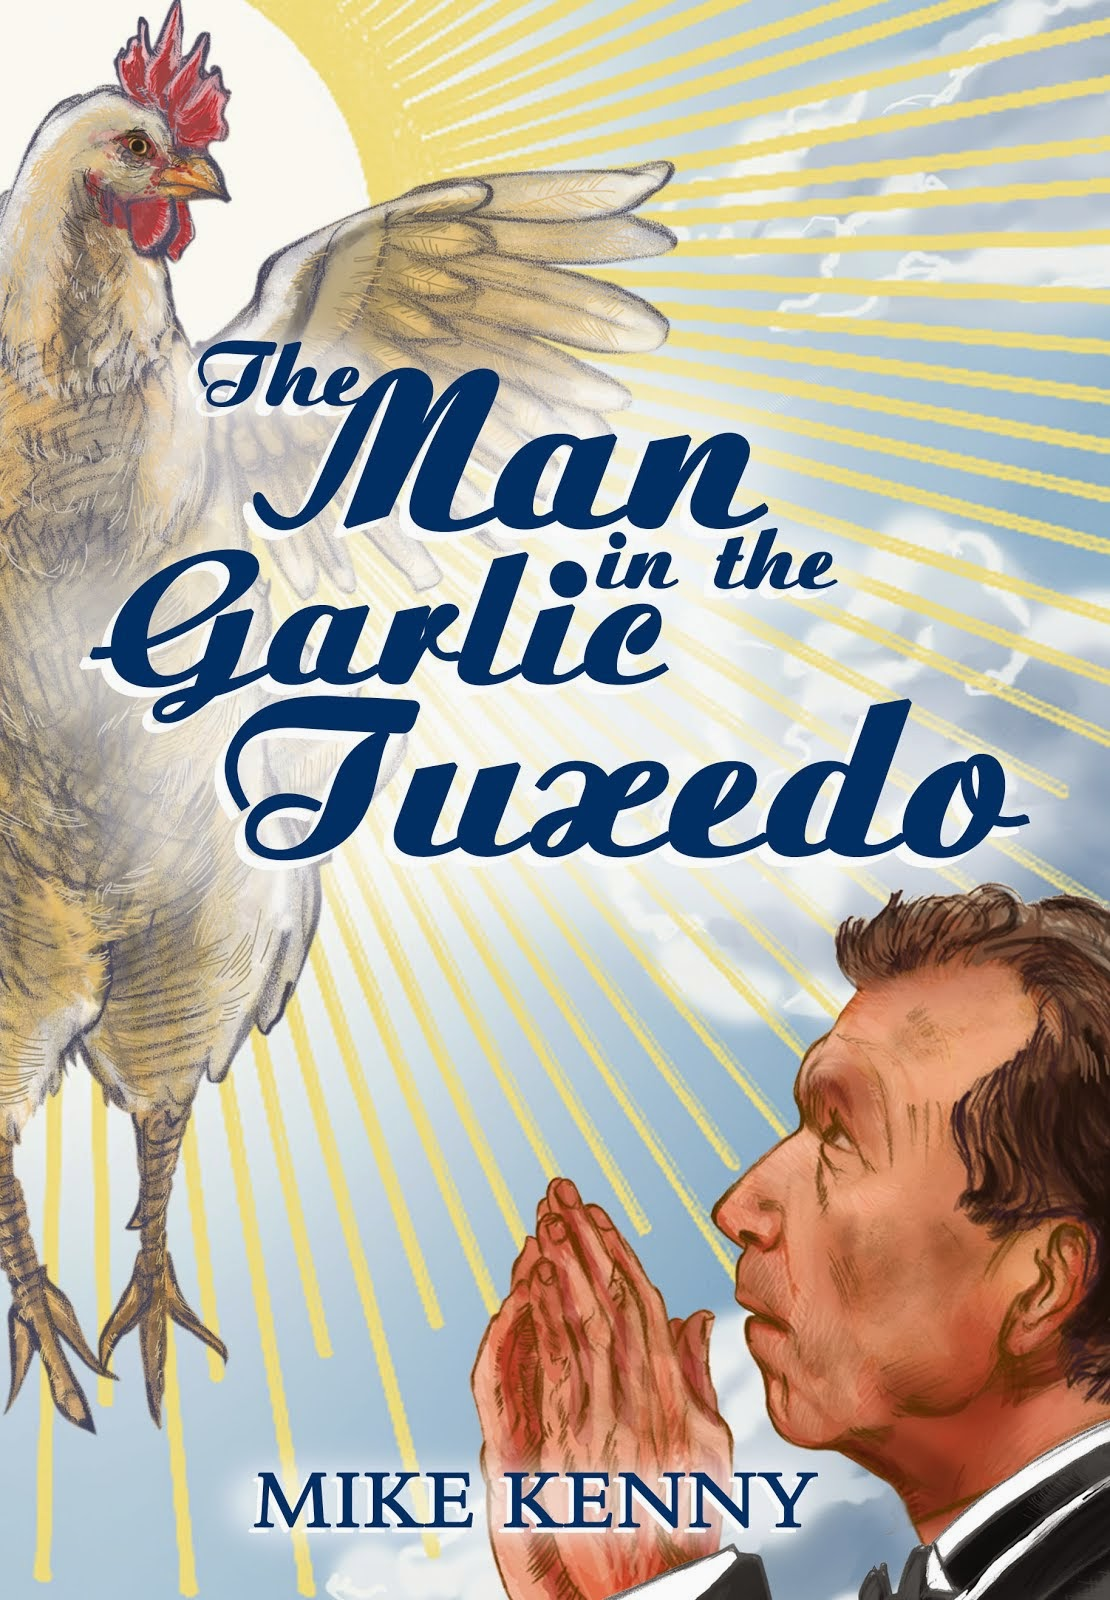 The Man in the Garlic Tuxedo